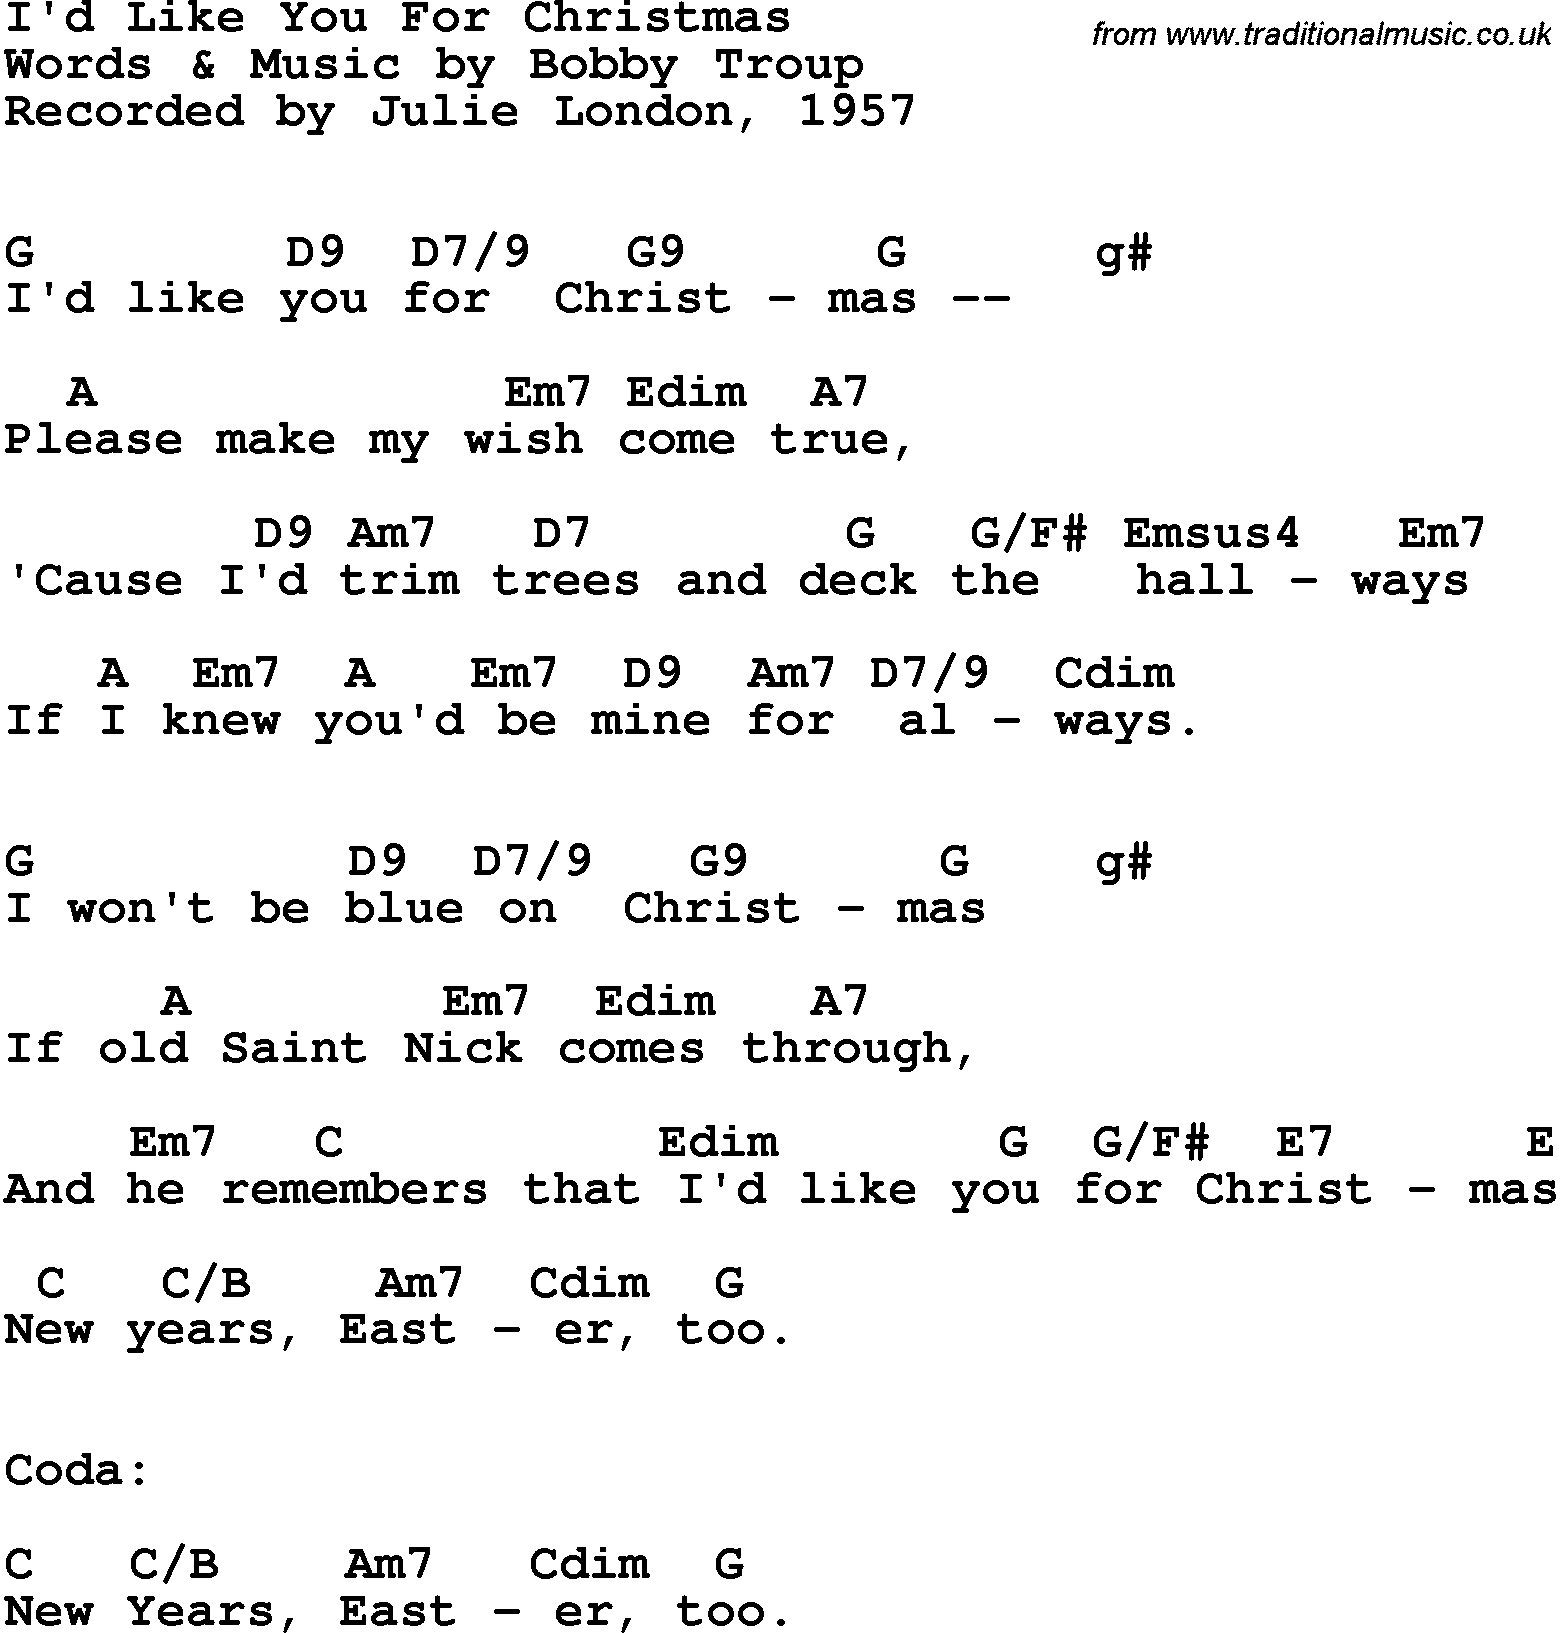 song lyrics with guitar chords for id like you for christmas julie london 1957 - Blue Christmas Guitar Chords